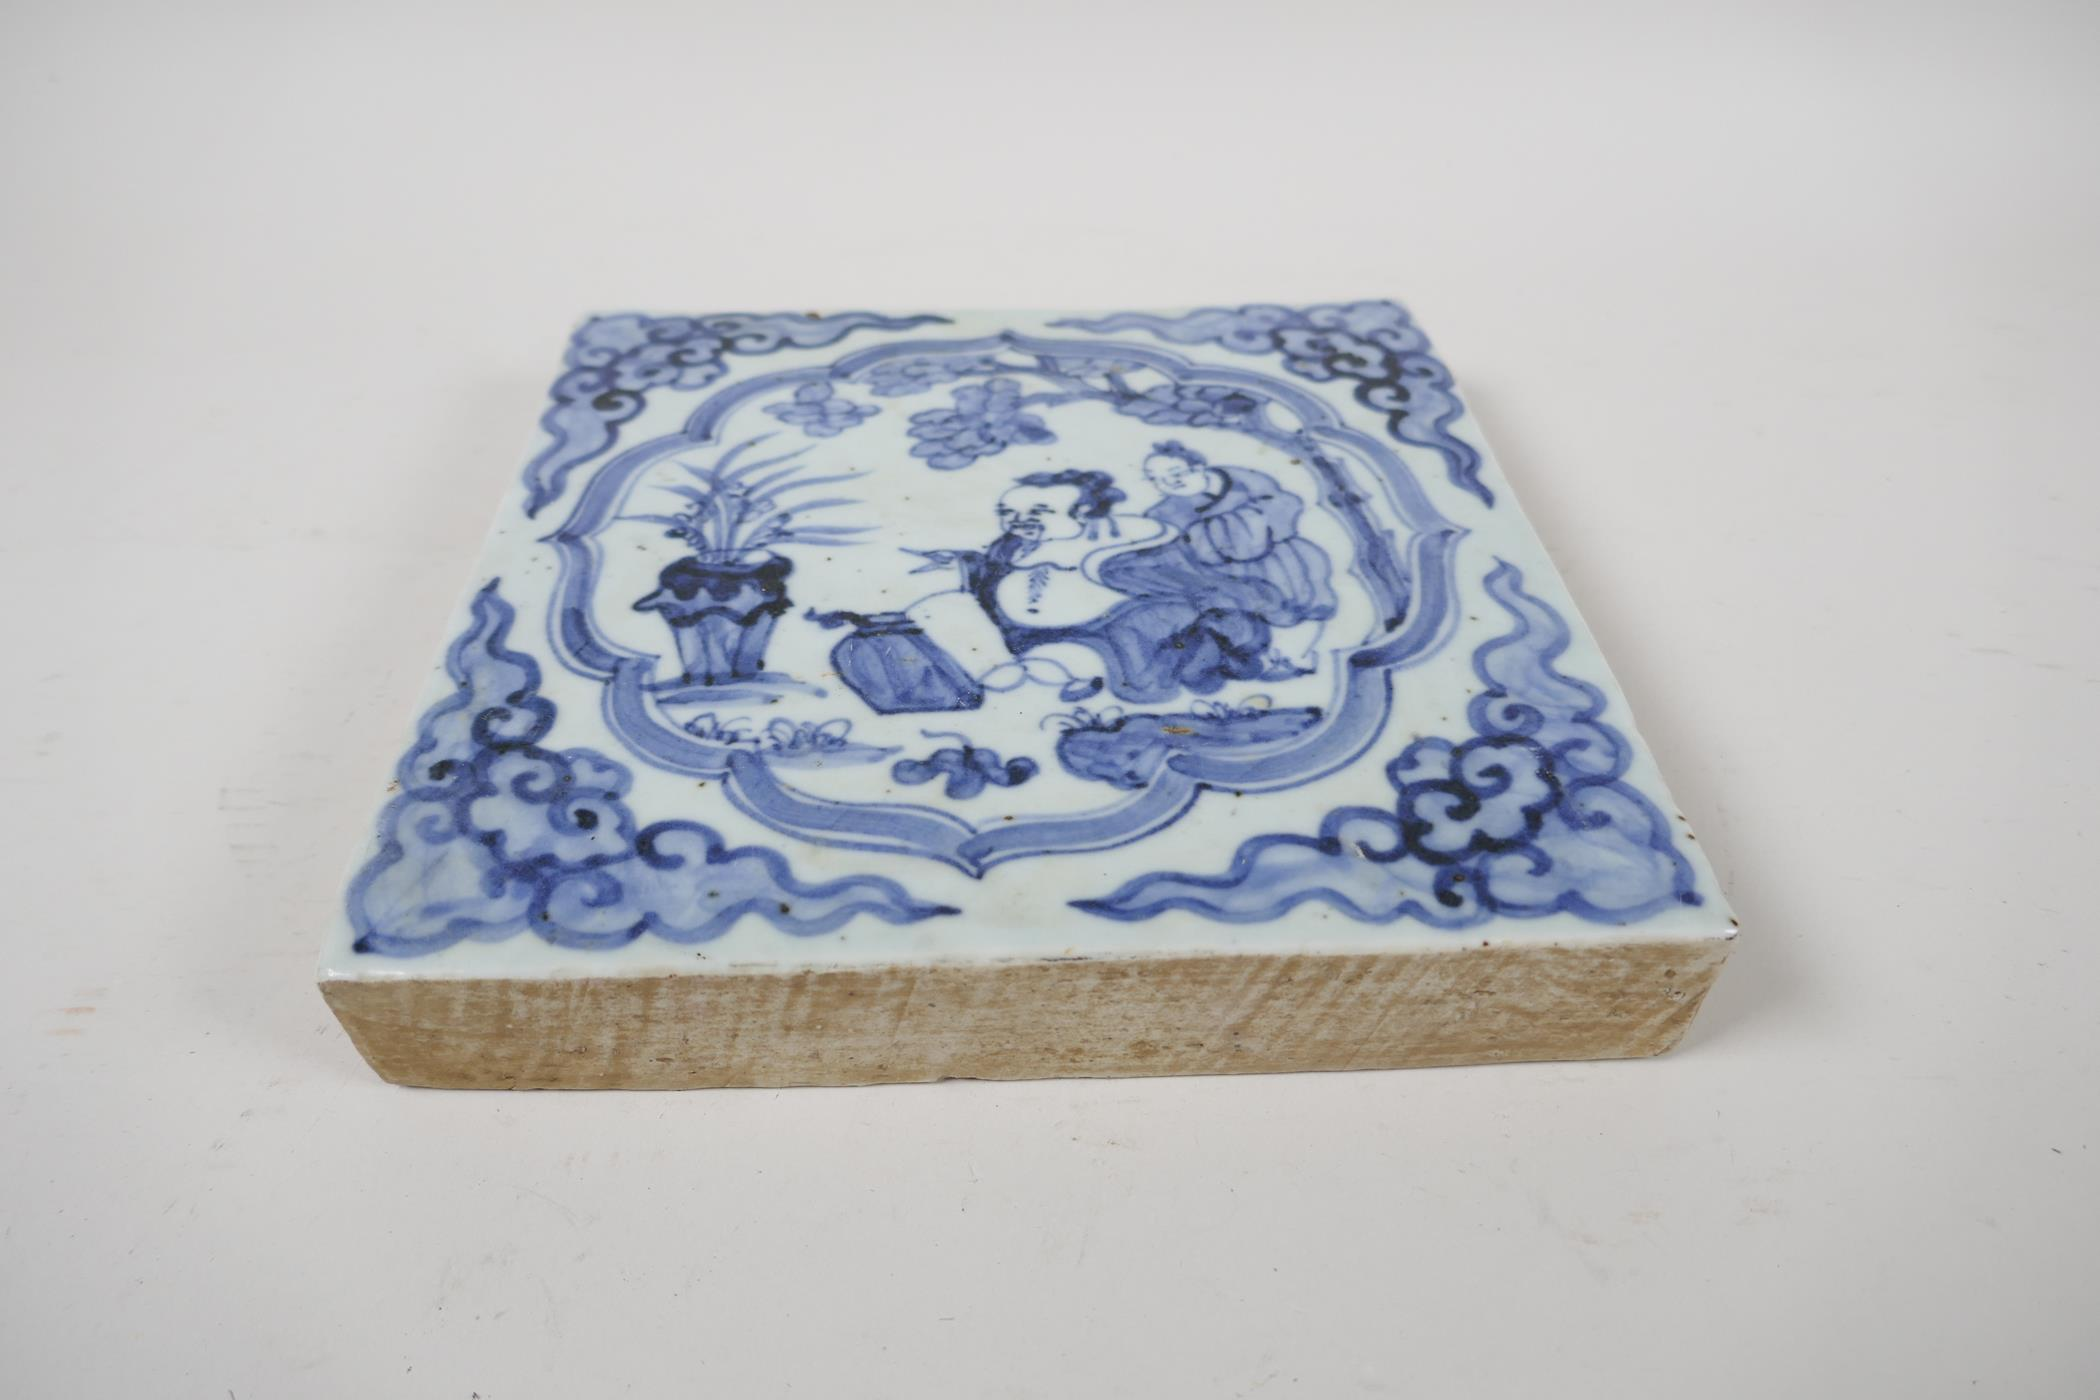 """A Ming style blue and white porcelain temple tile with figural decoration, Chinese, 7½"""" x 7½"""" - Image 2 of 3"""